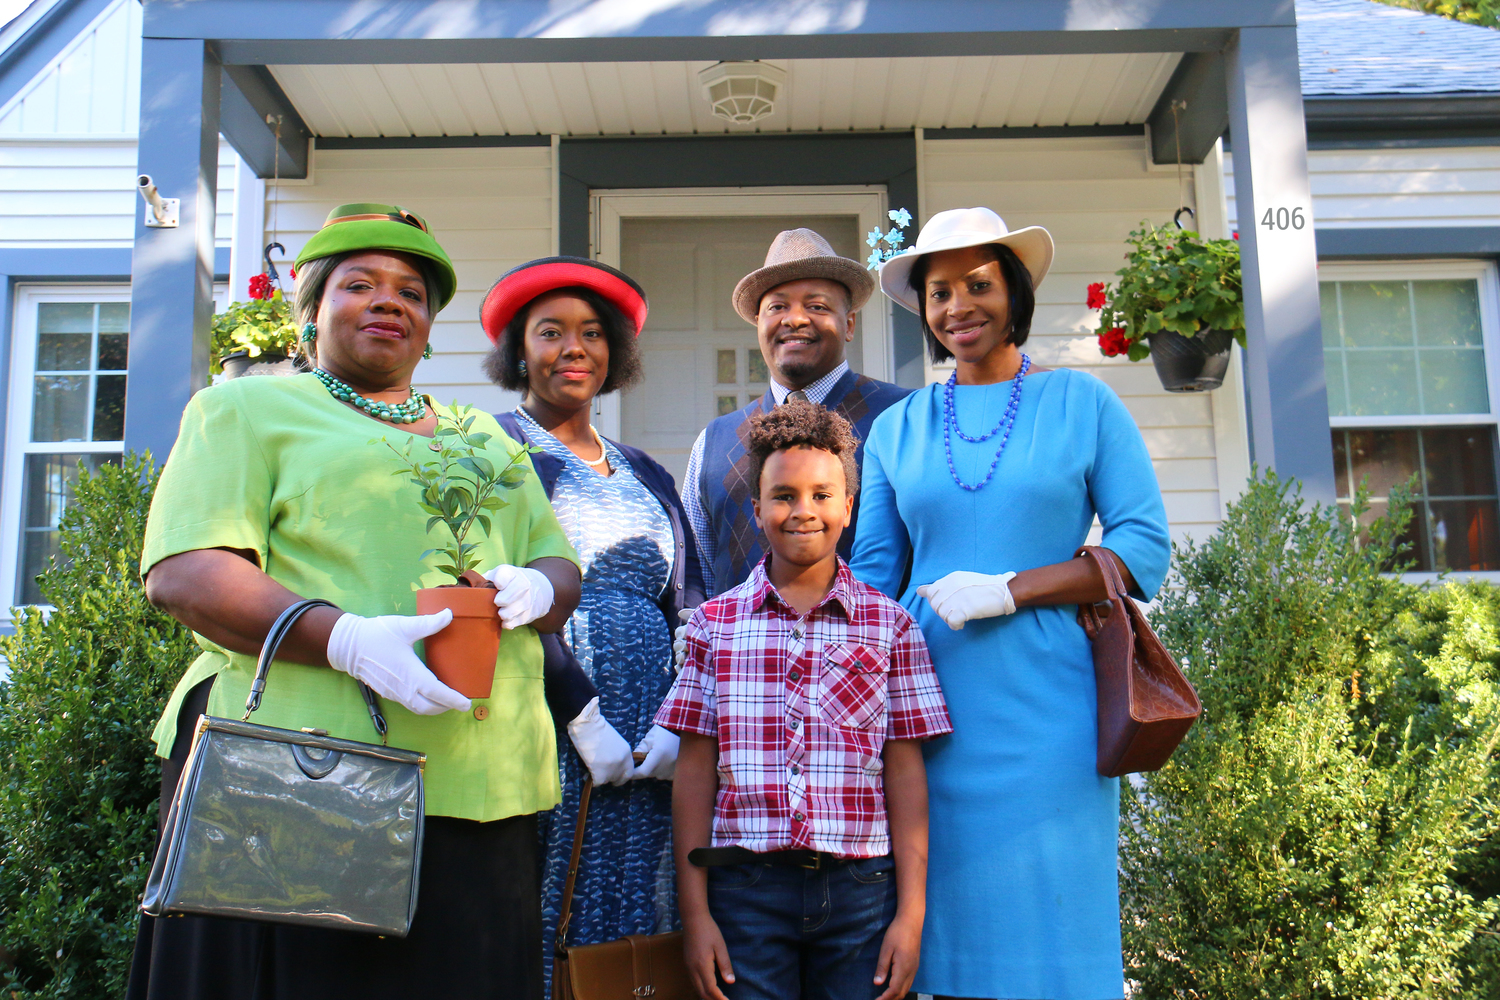 BWW Review: A RAISIN IN THE SUN at Stagecrafters is an Excellent Portrayal of the American Classic Play!